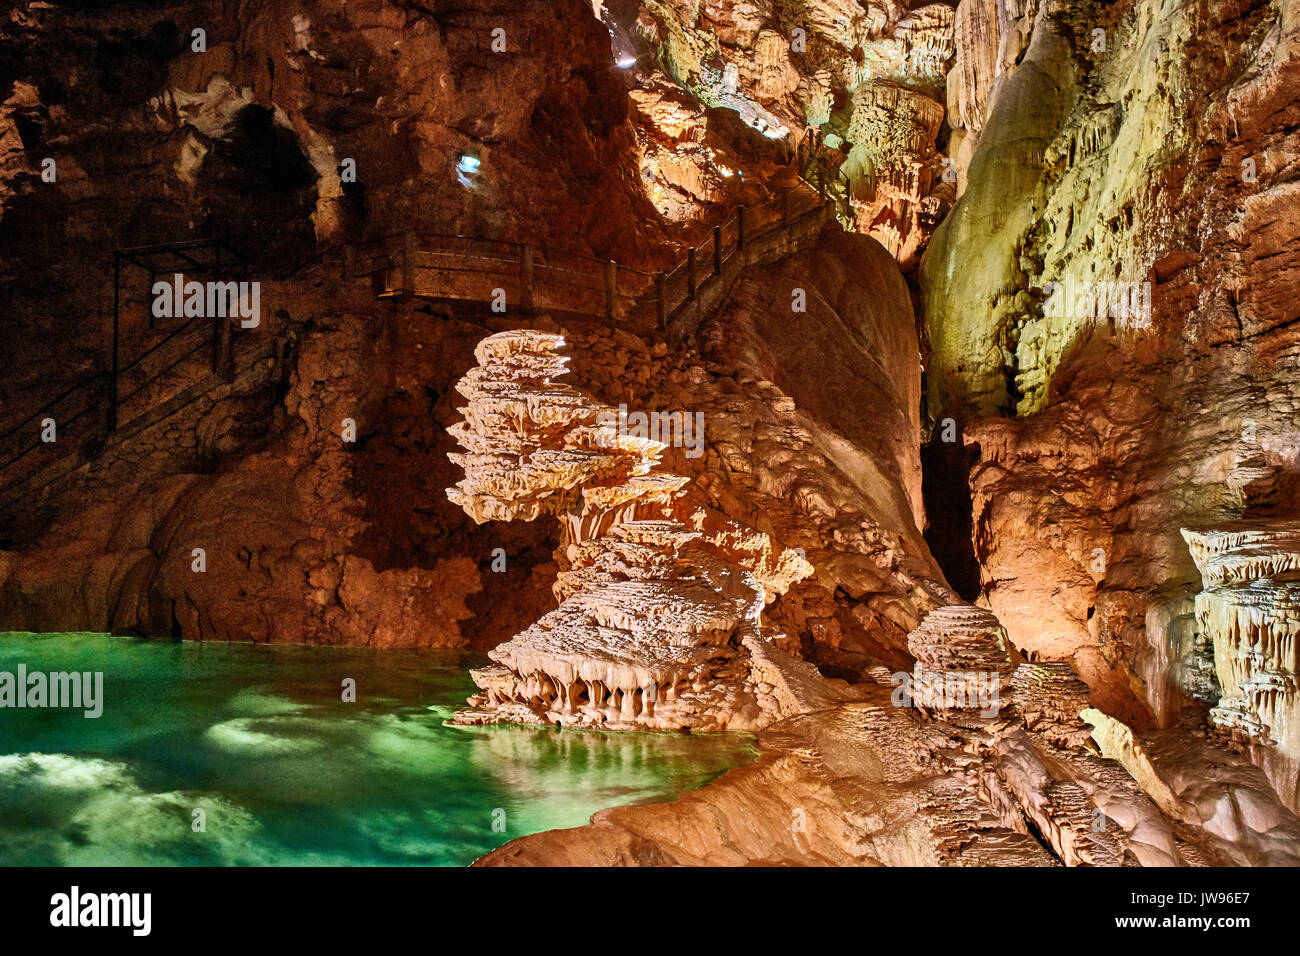 Europe, France, Occitanie, Lot,  Padirac cave,  the Padirac natural limestone chasm, this immense cave with its underground lakes and stalactites The cavern was first explored 120 years ago and is visited by tourists in boats - Stock Image